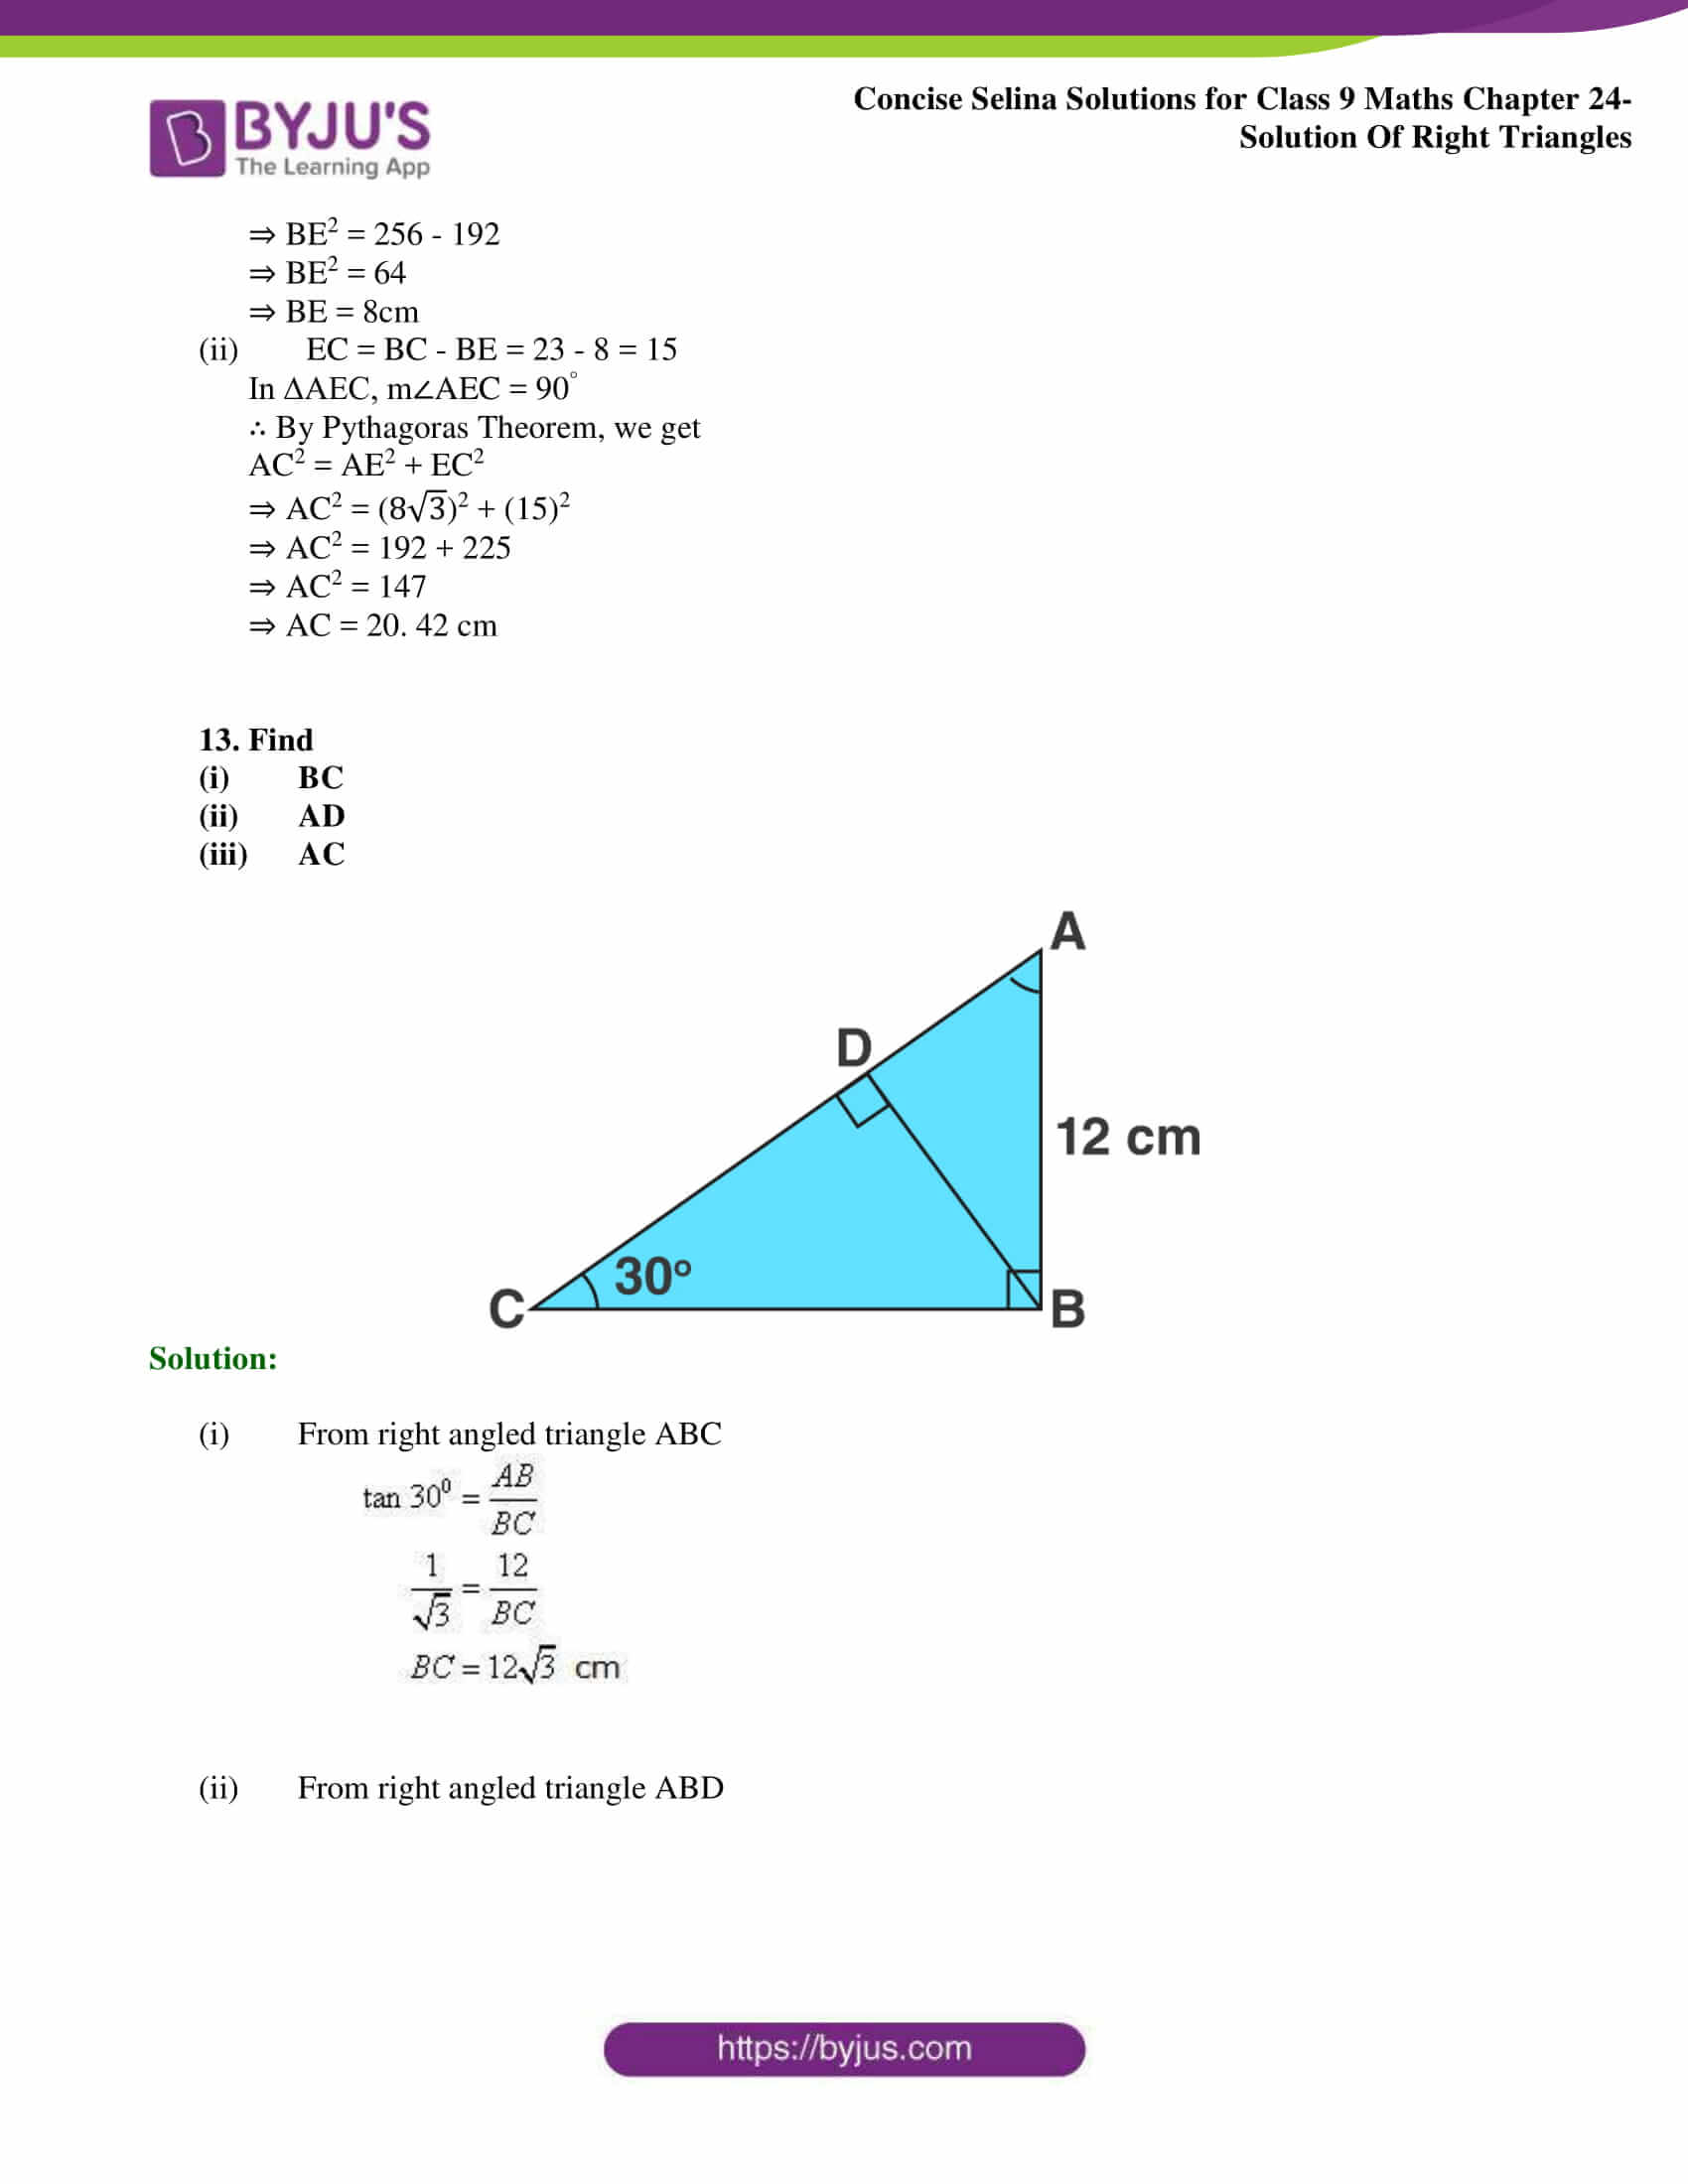 Concise Selina Solutions Class 9 Maths Chapter 24 Solution Of Right Triangles part 14